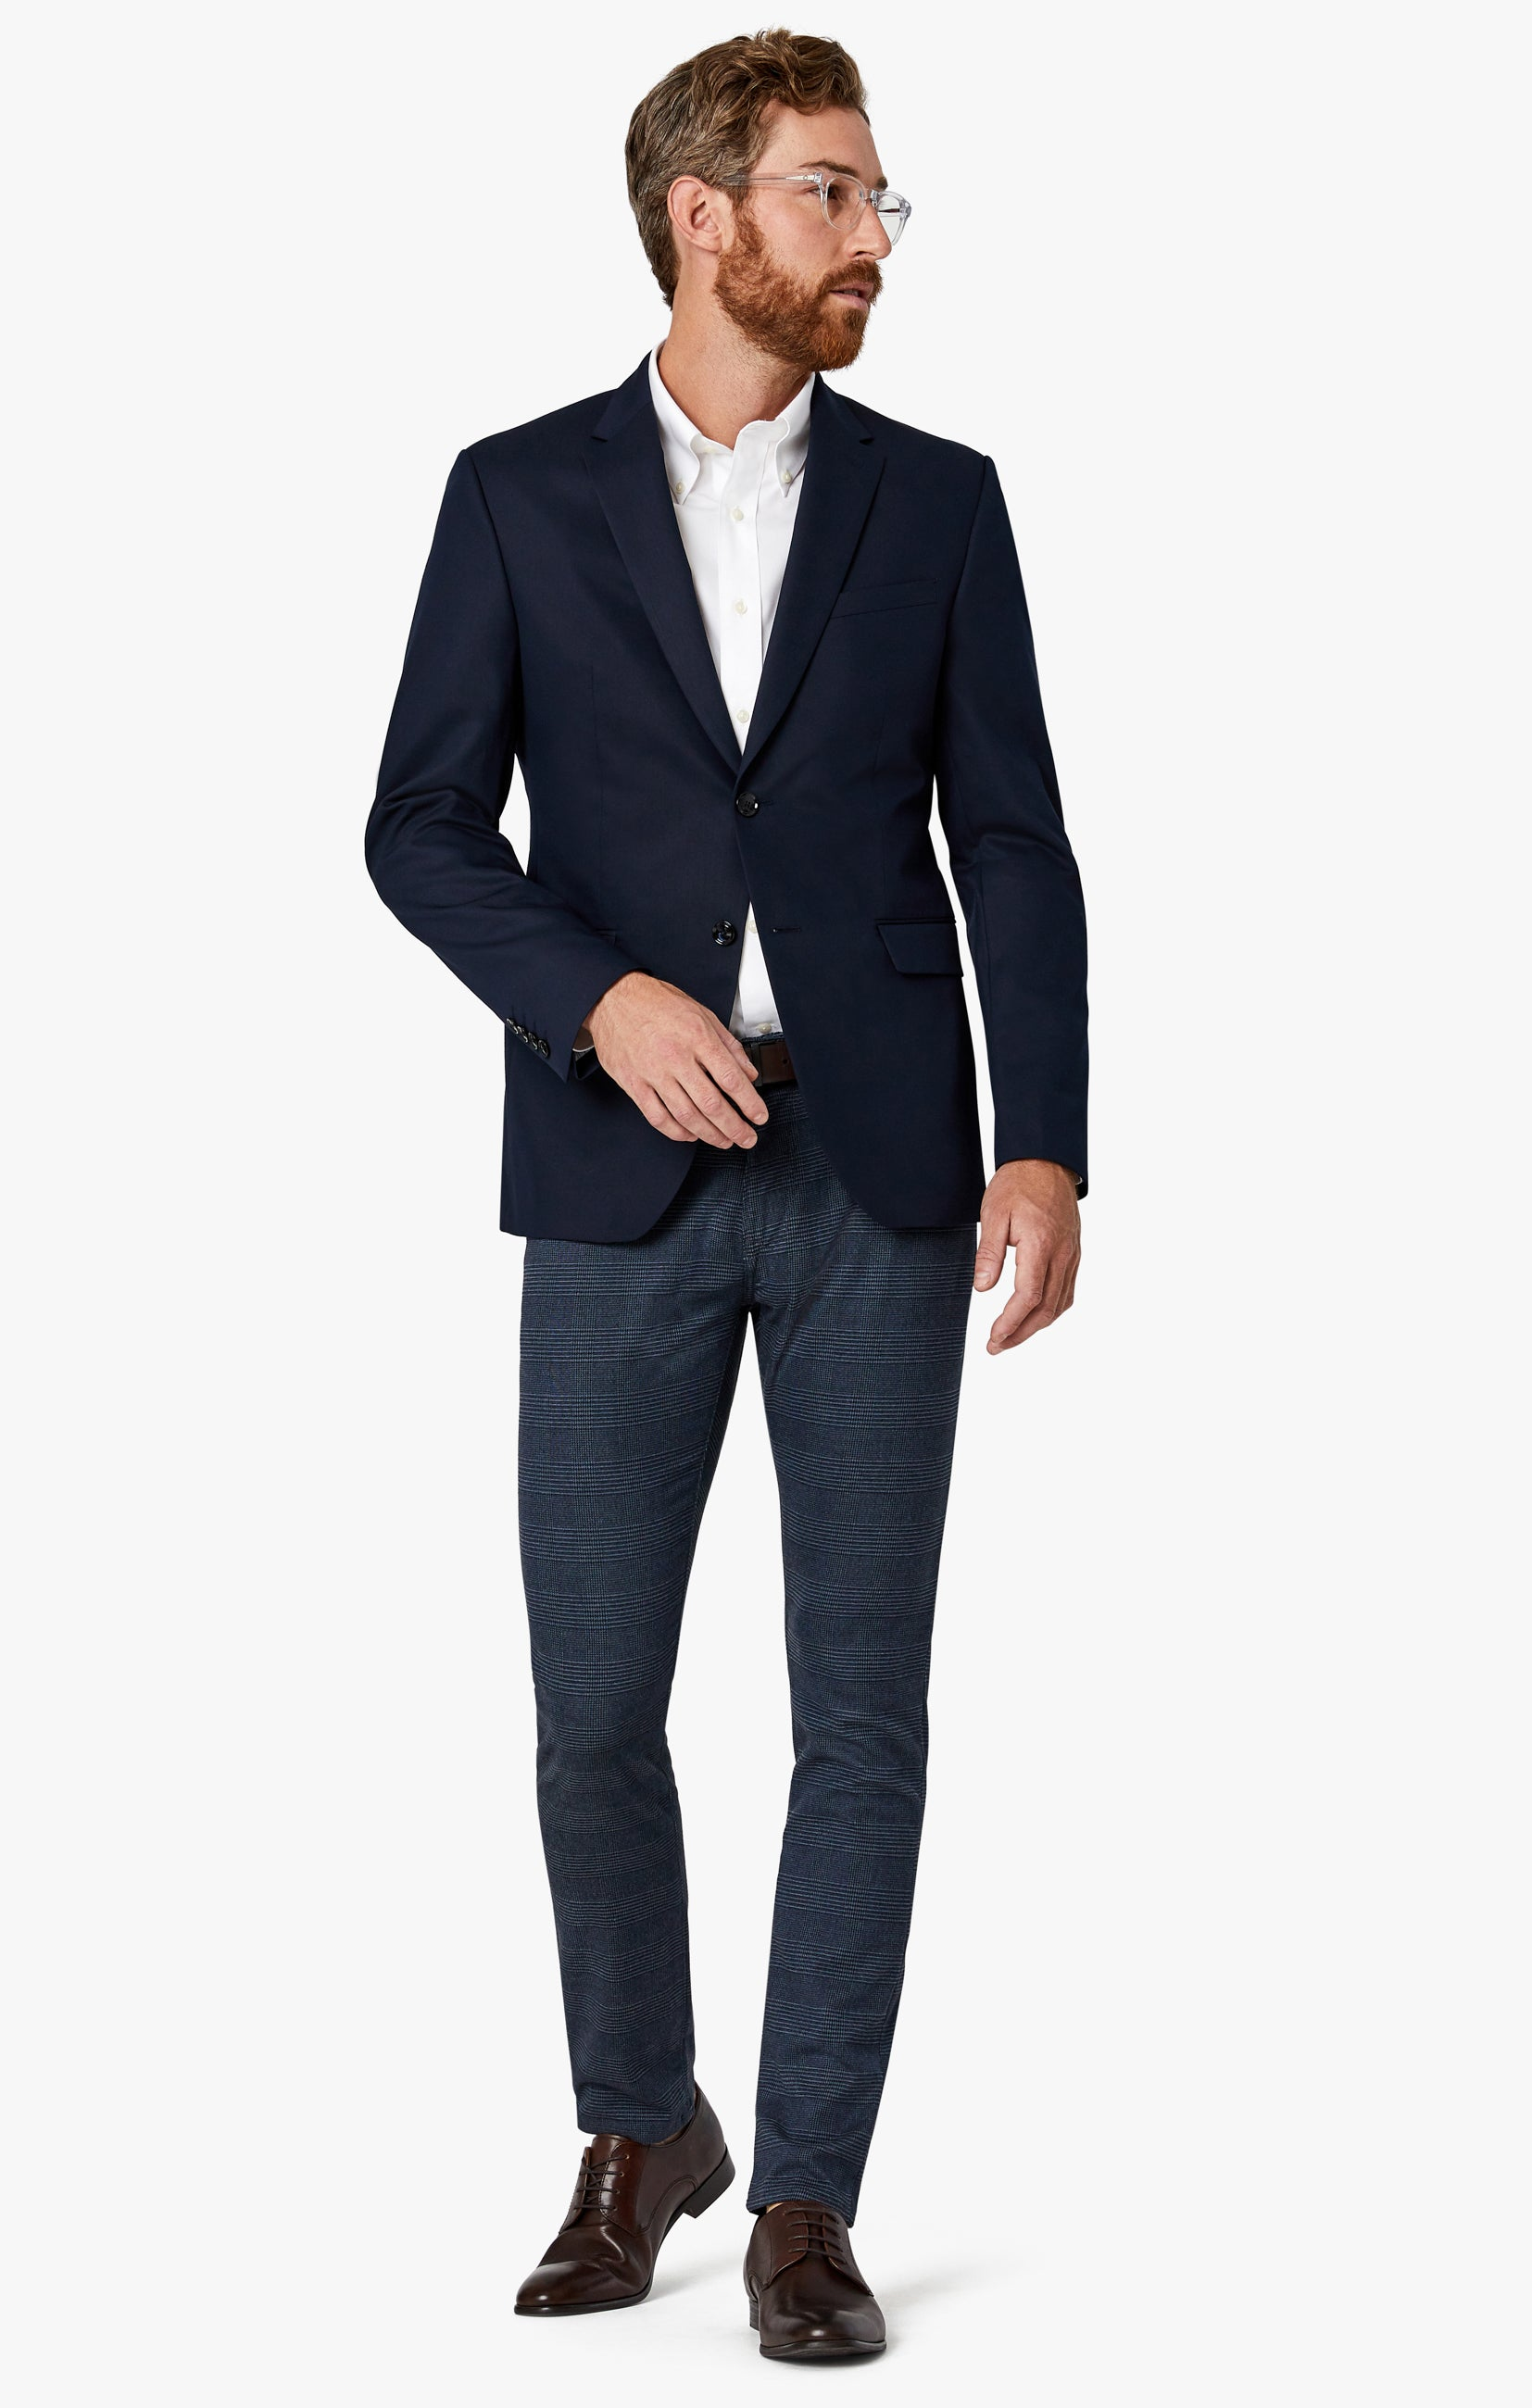 Courage Straight Leg Pants in Navy Checked Image 2